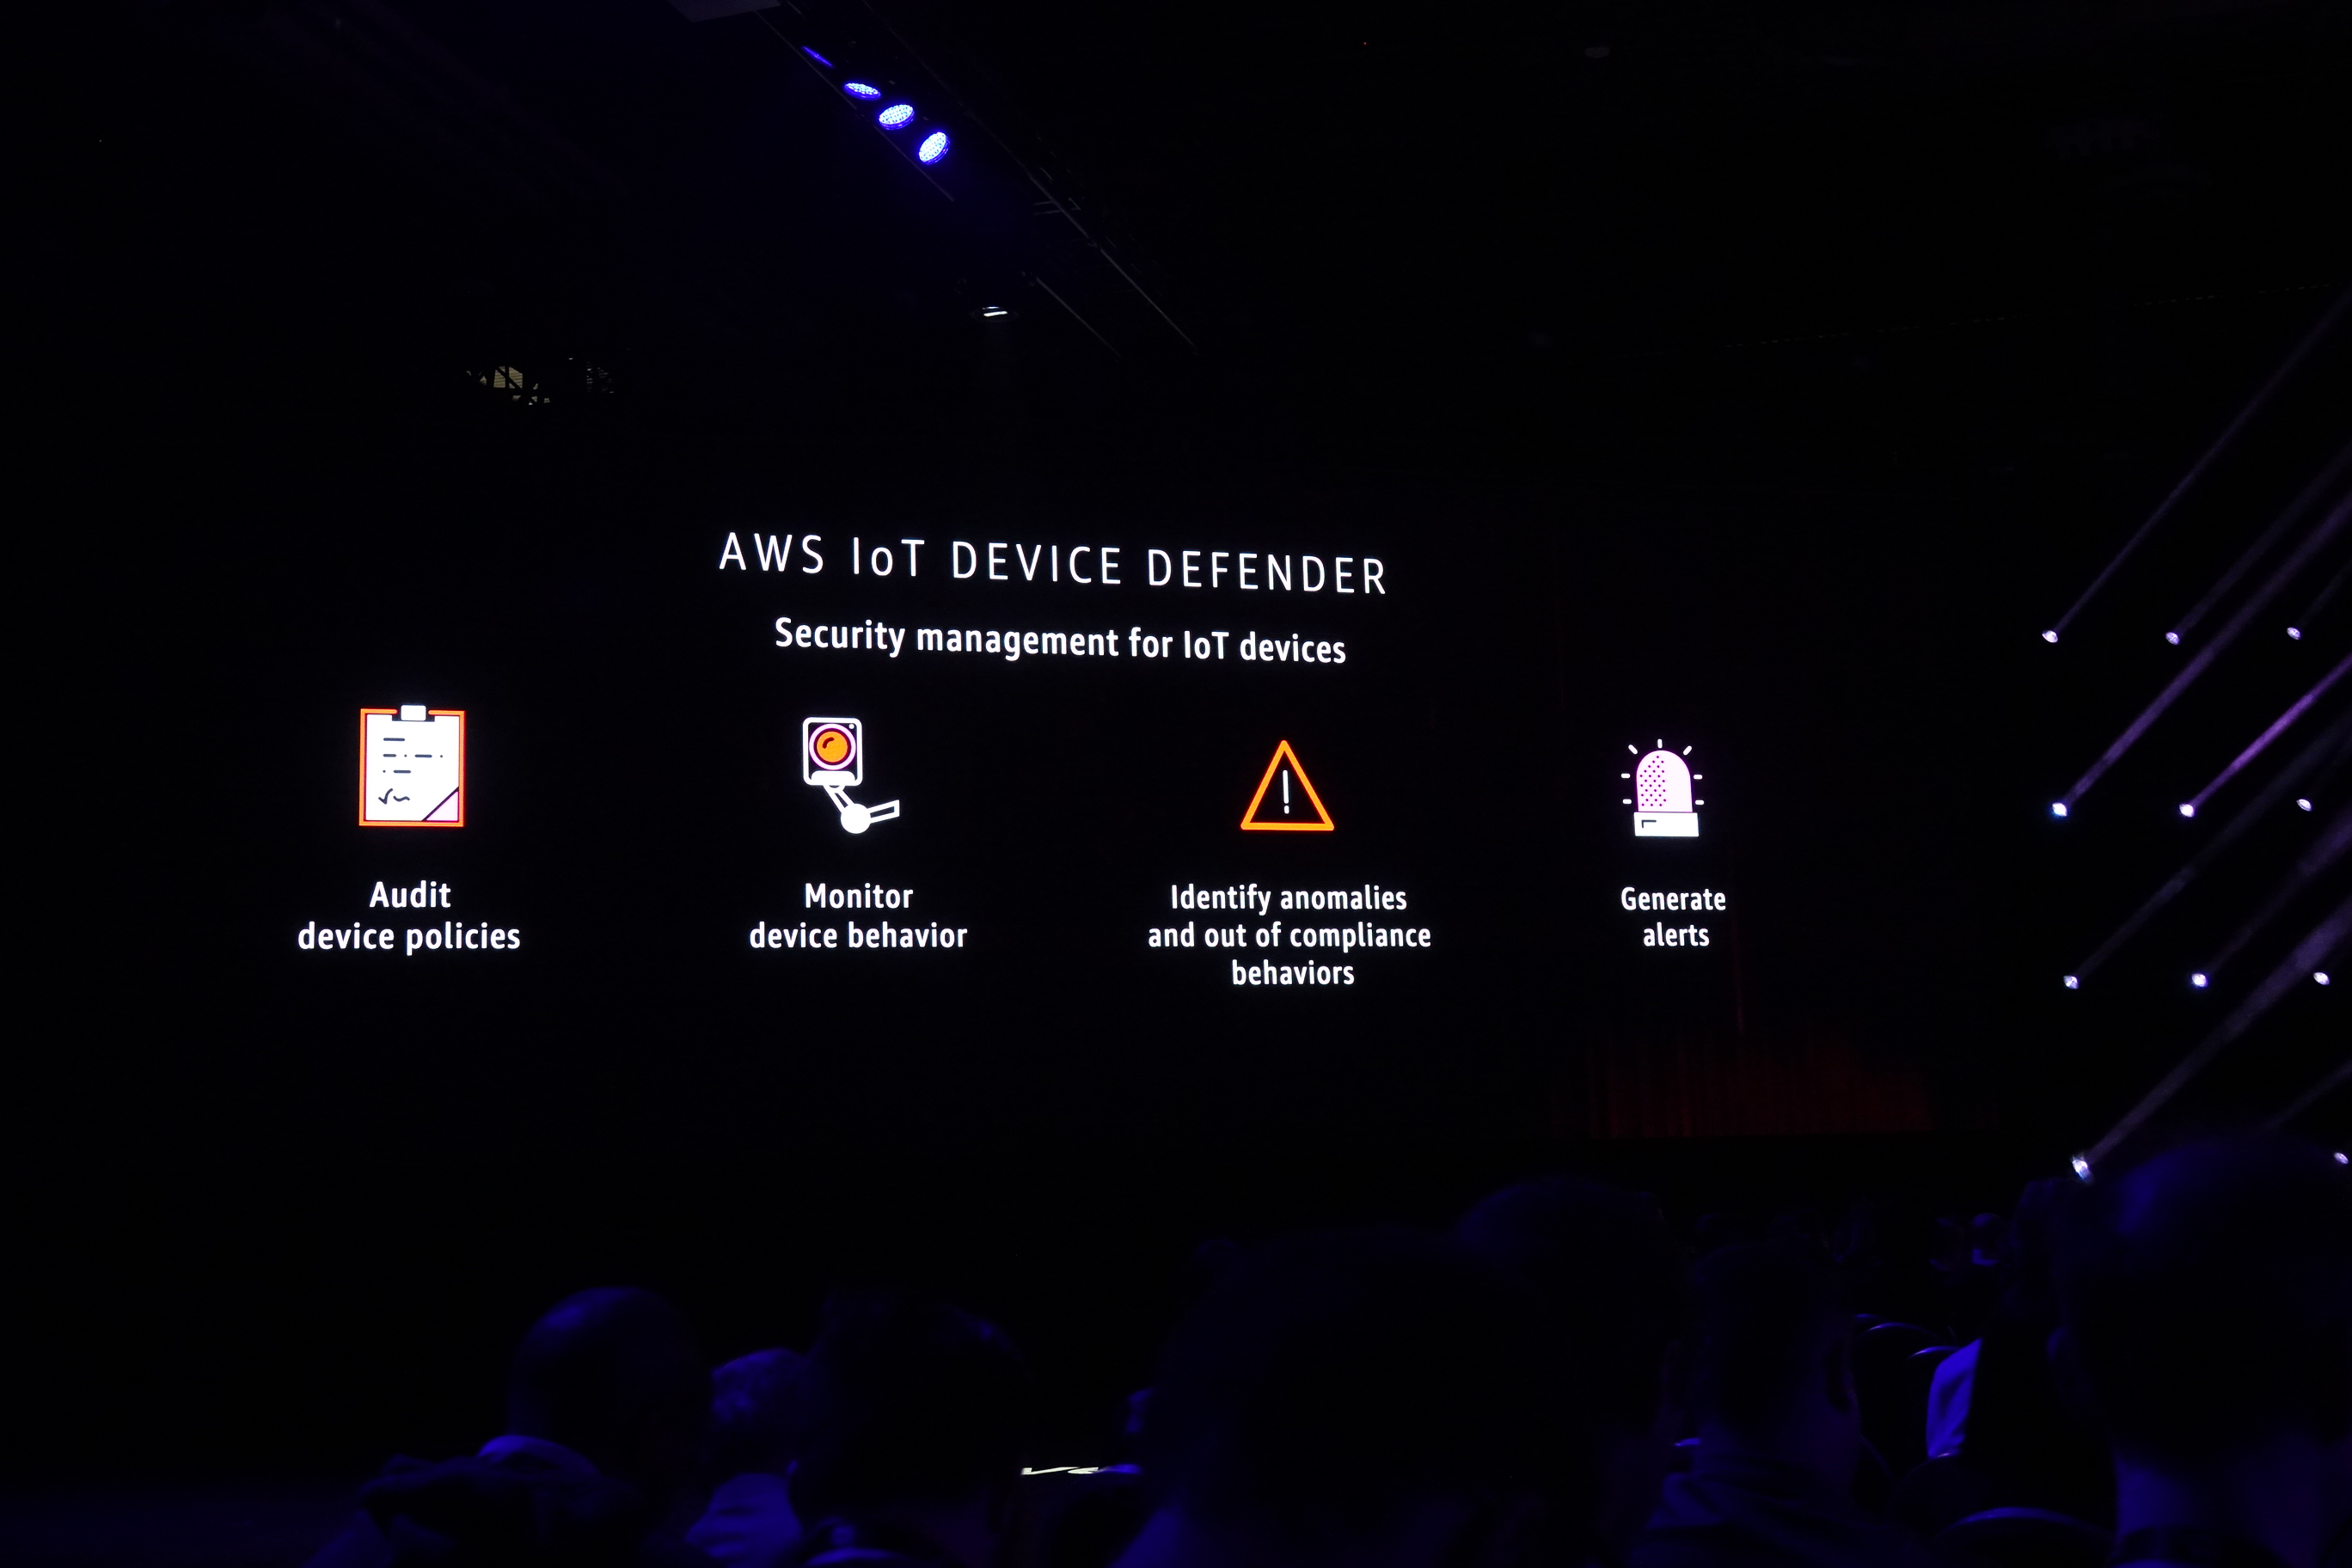 AWS IoT DEVICE DEFENDER